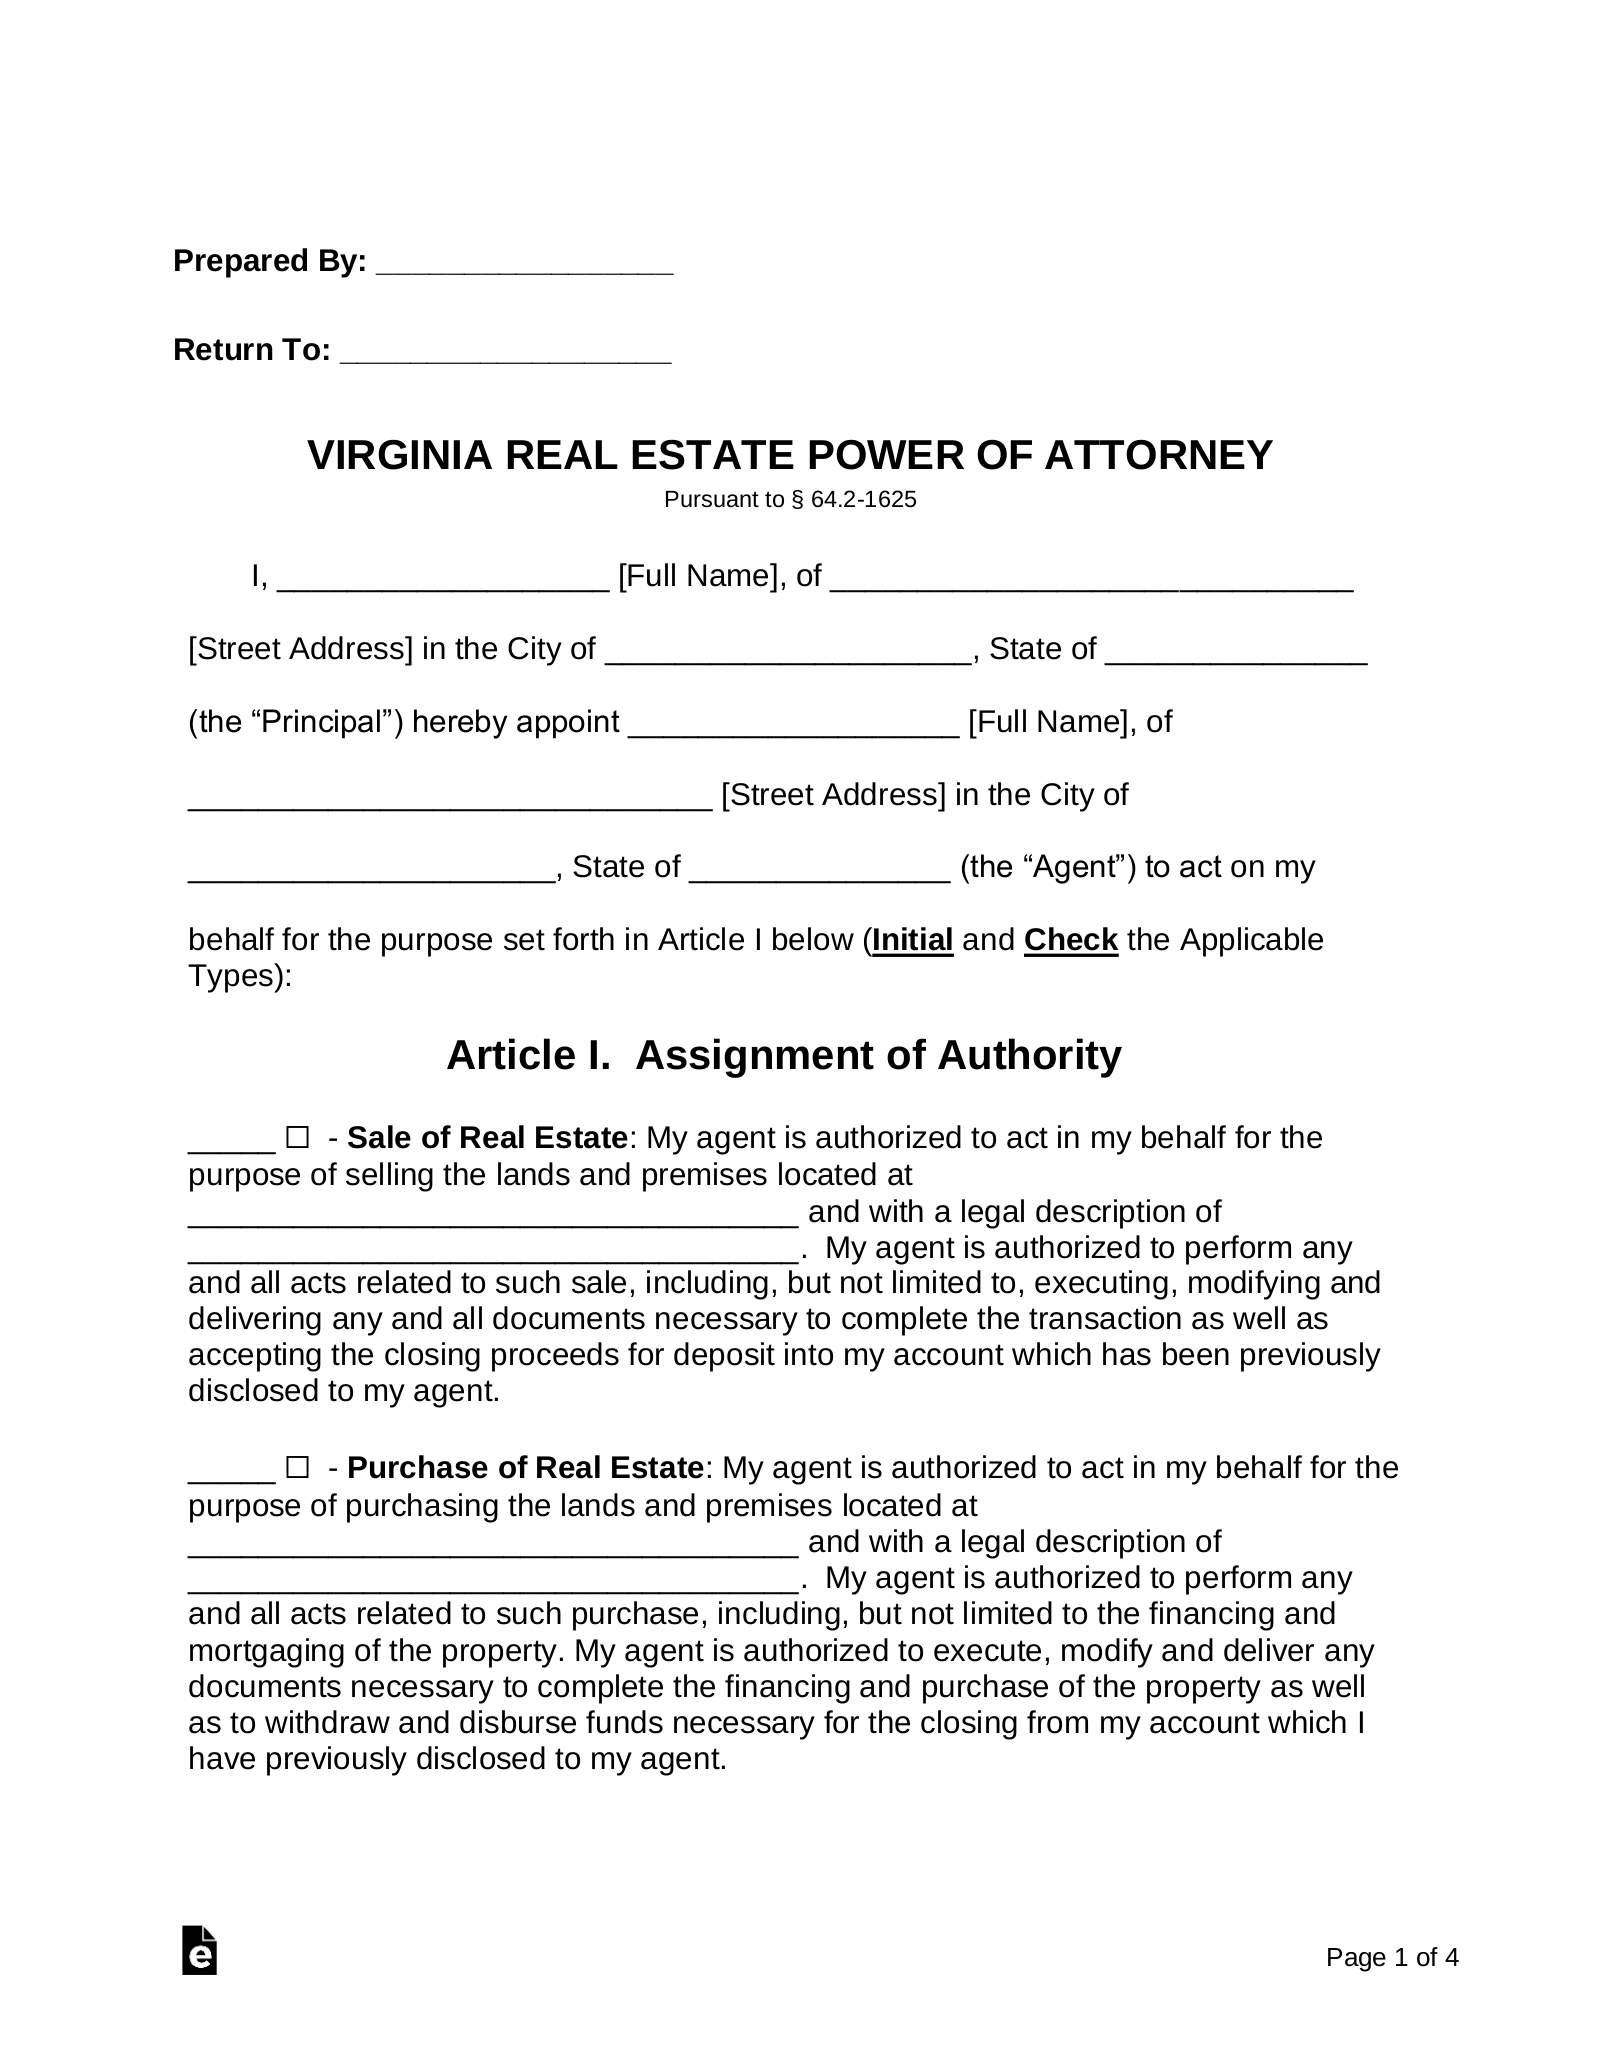 power of attorney form virginia  Free Virginia Real Estate Power of Attorney Form - Word ...